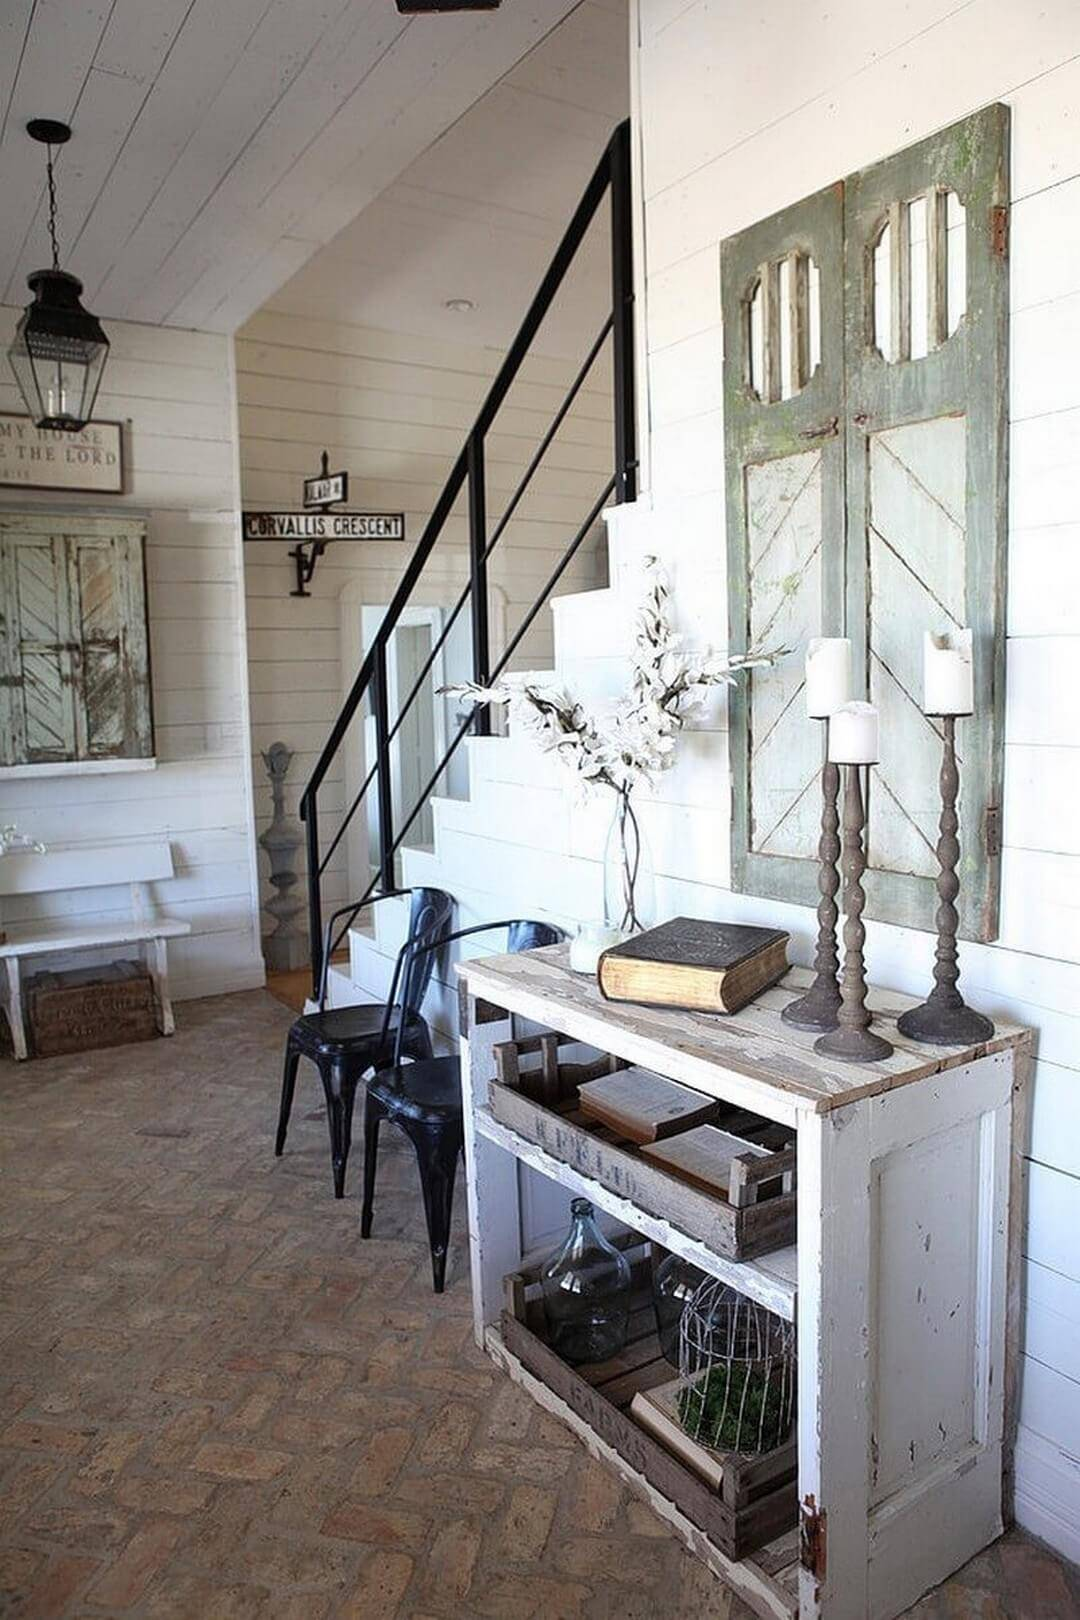 Entryway with wooden console and vintage window shutters on the wall